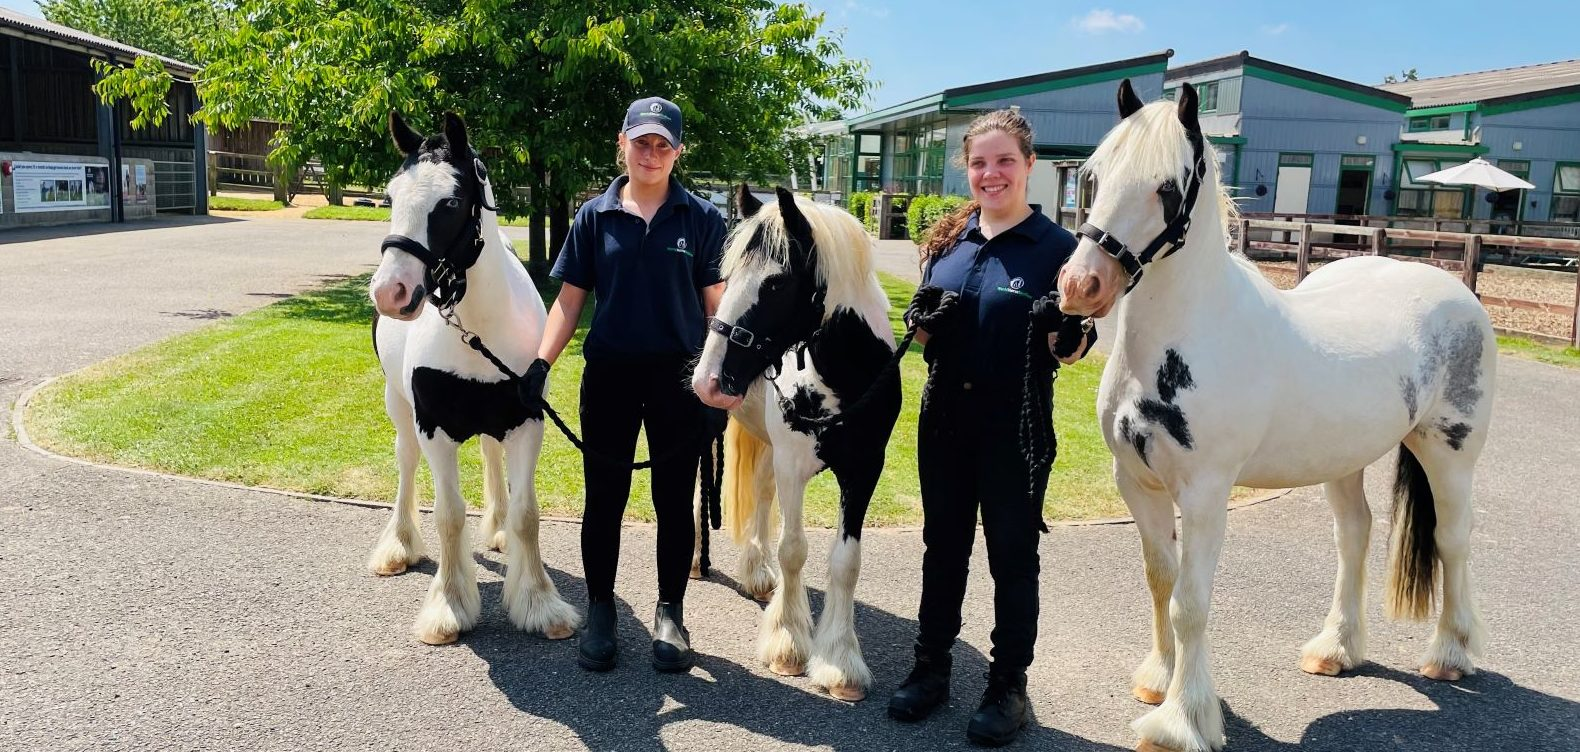 Rescued horses have a bright future ahead of them